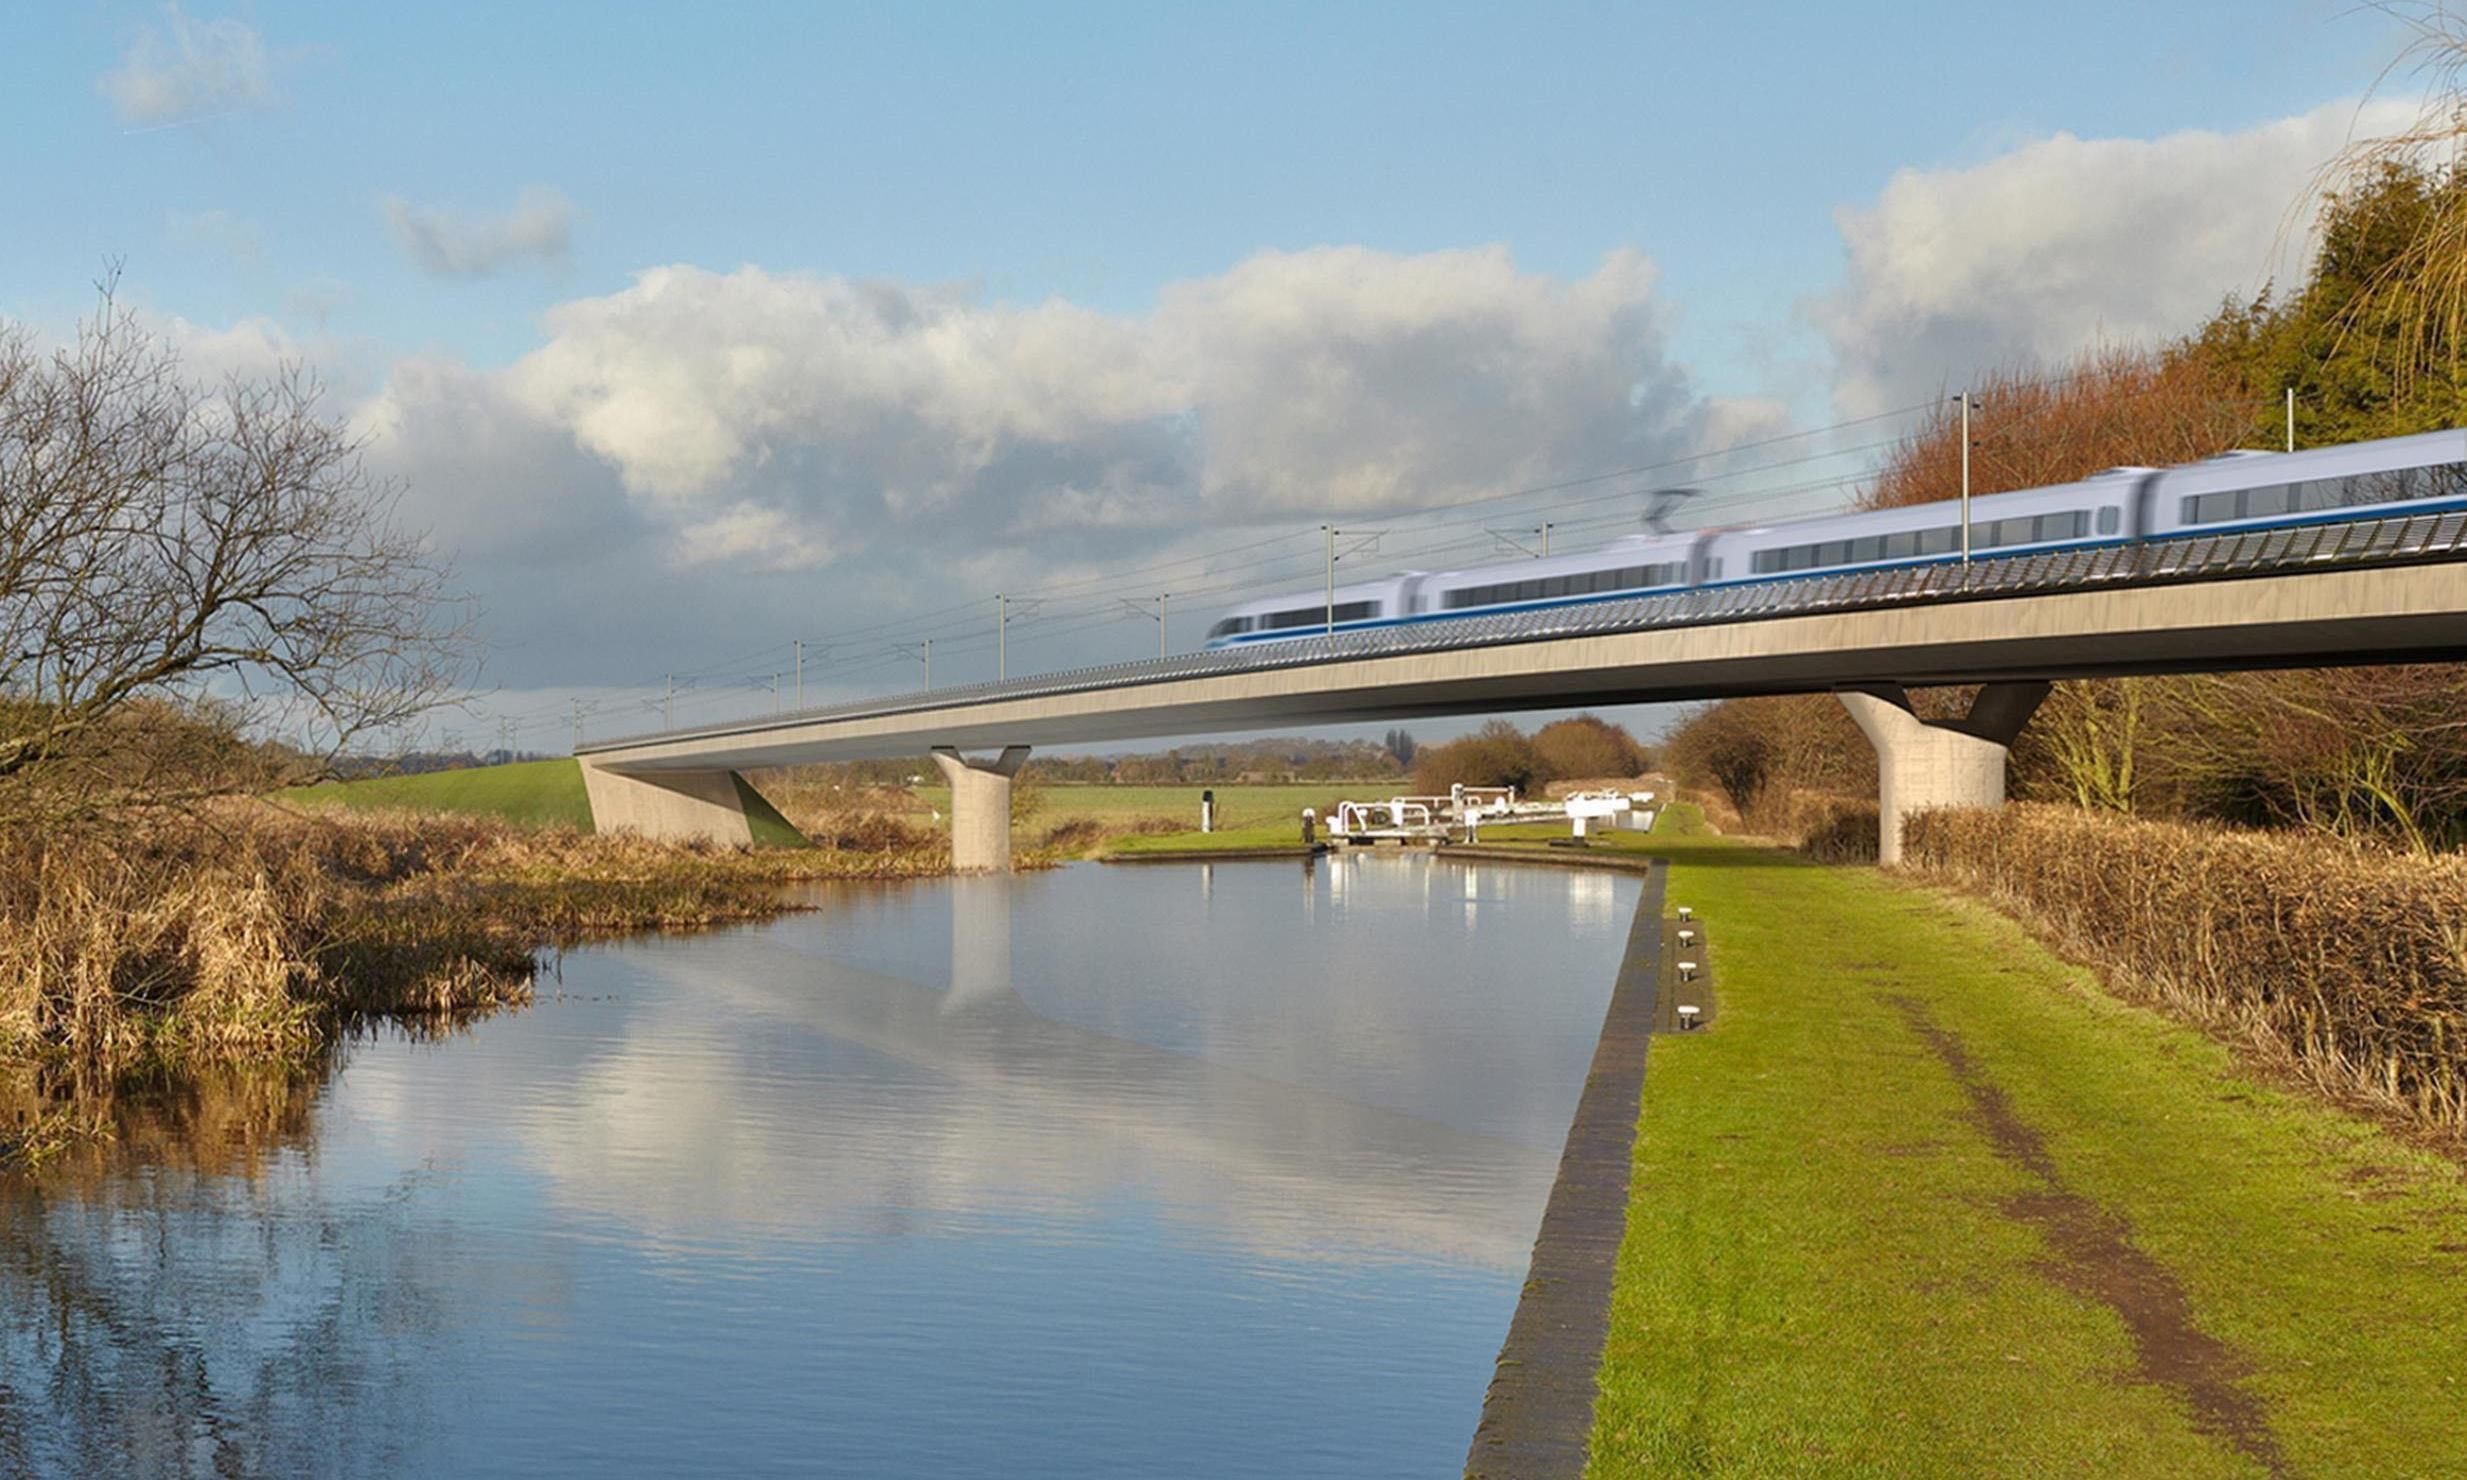 If Boris Johnson wanted Britain to lead the world, he'd stop hedging his bets and back HS2